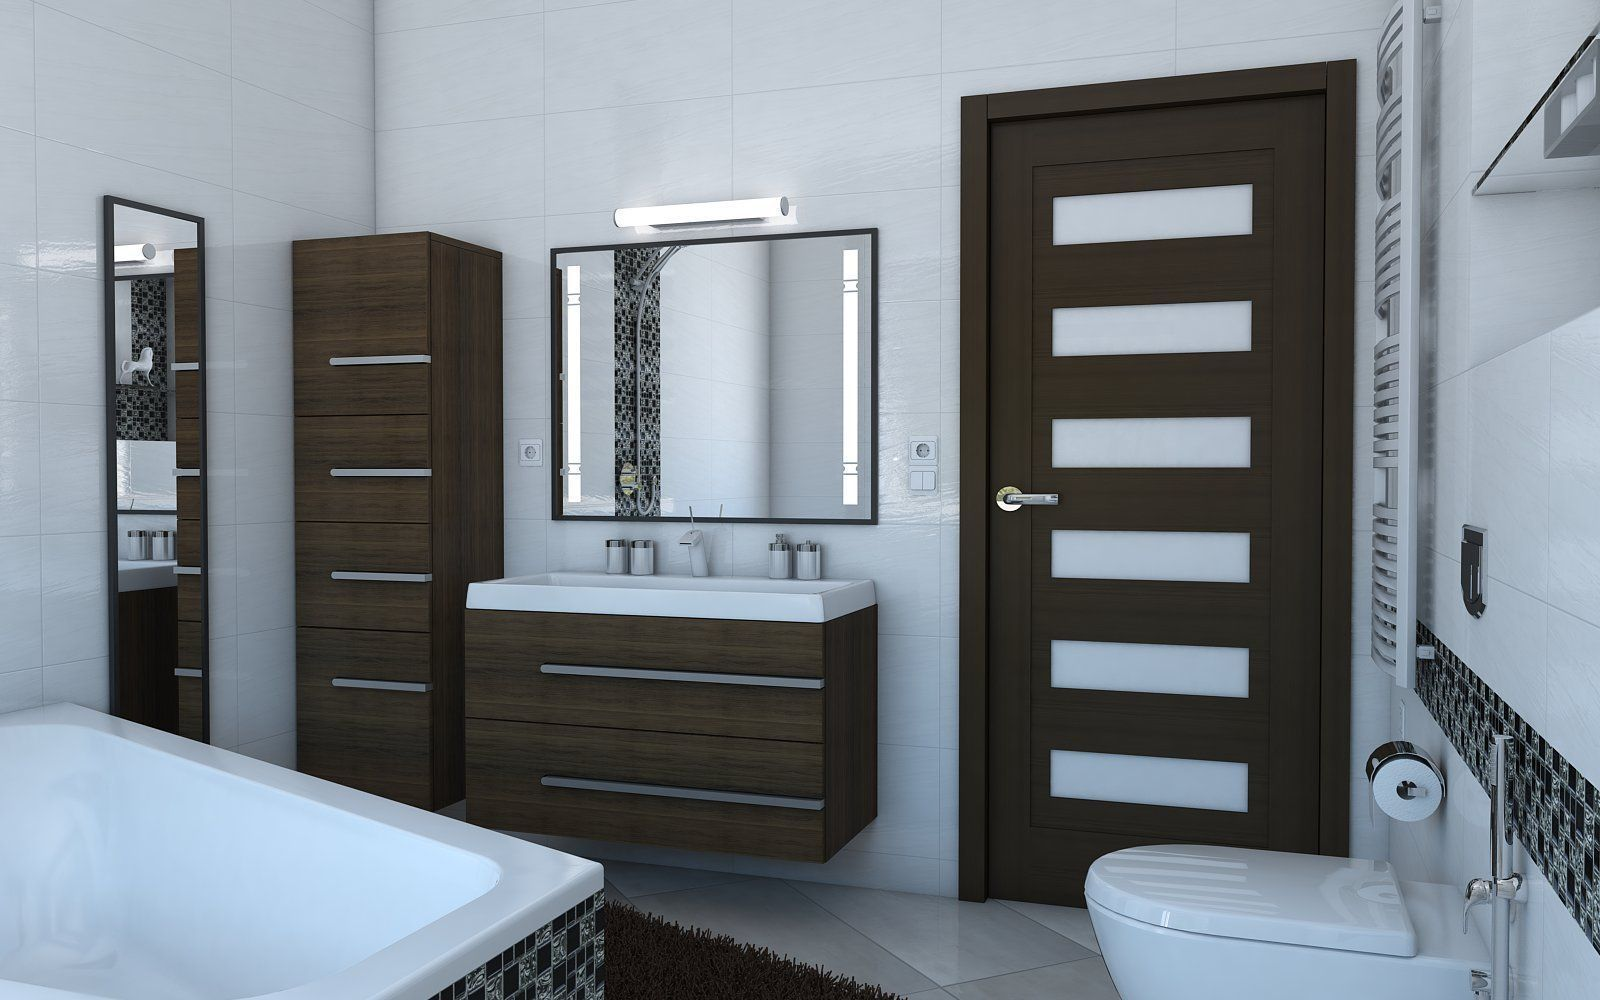 Model bathroom pictures -  Bathroom With Angular Bath 3d Model Max Obj 3ds Fbx Skp 3